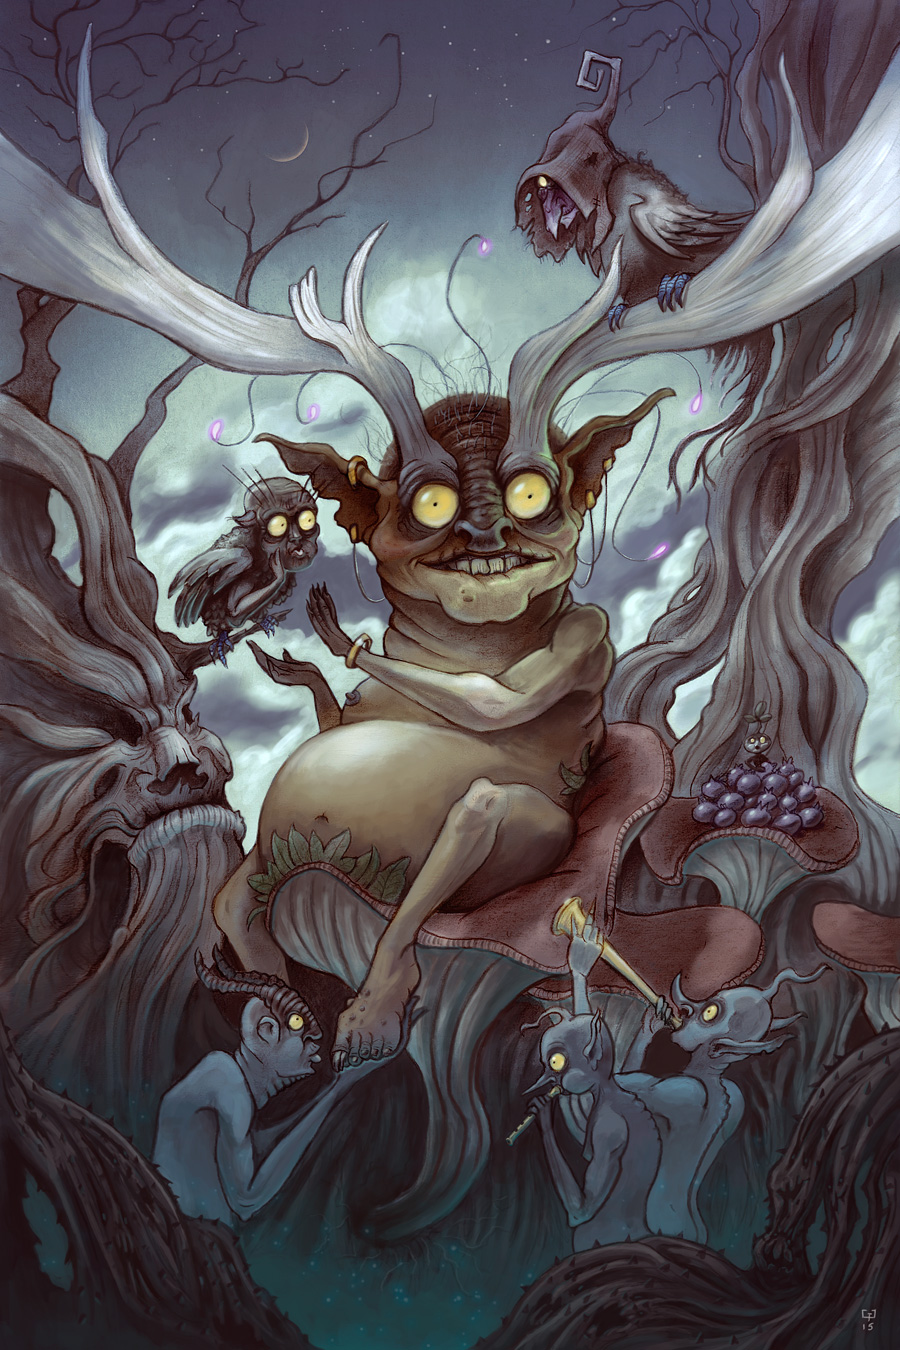 The Faerie King